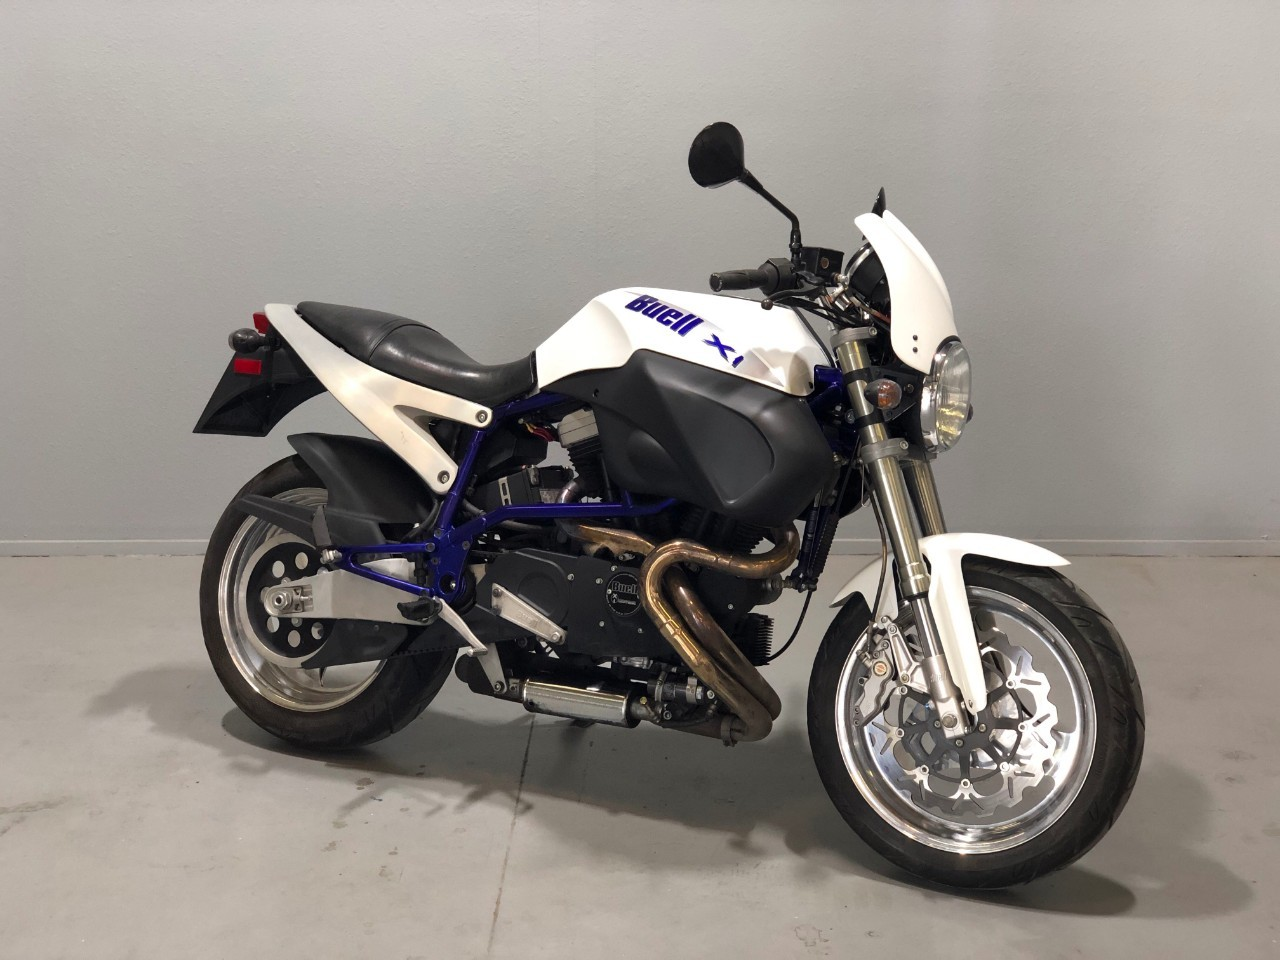 Buell For Sale - Buell Exhaust Motorcycles - Cycle Trader